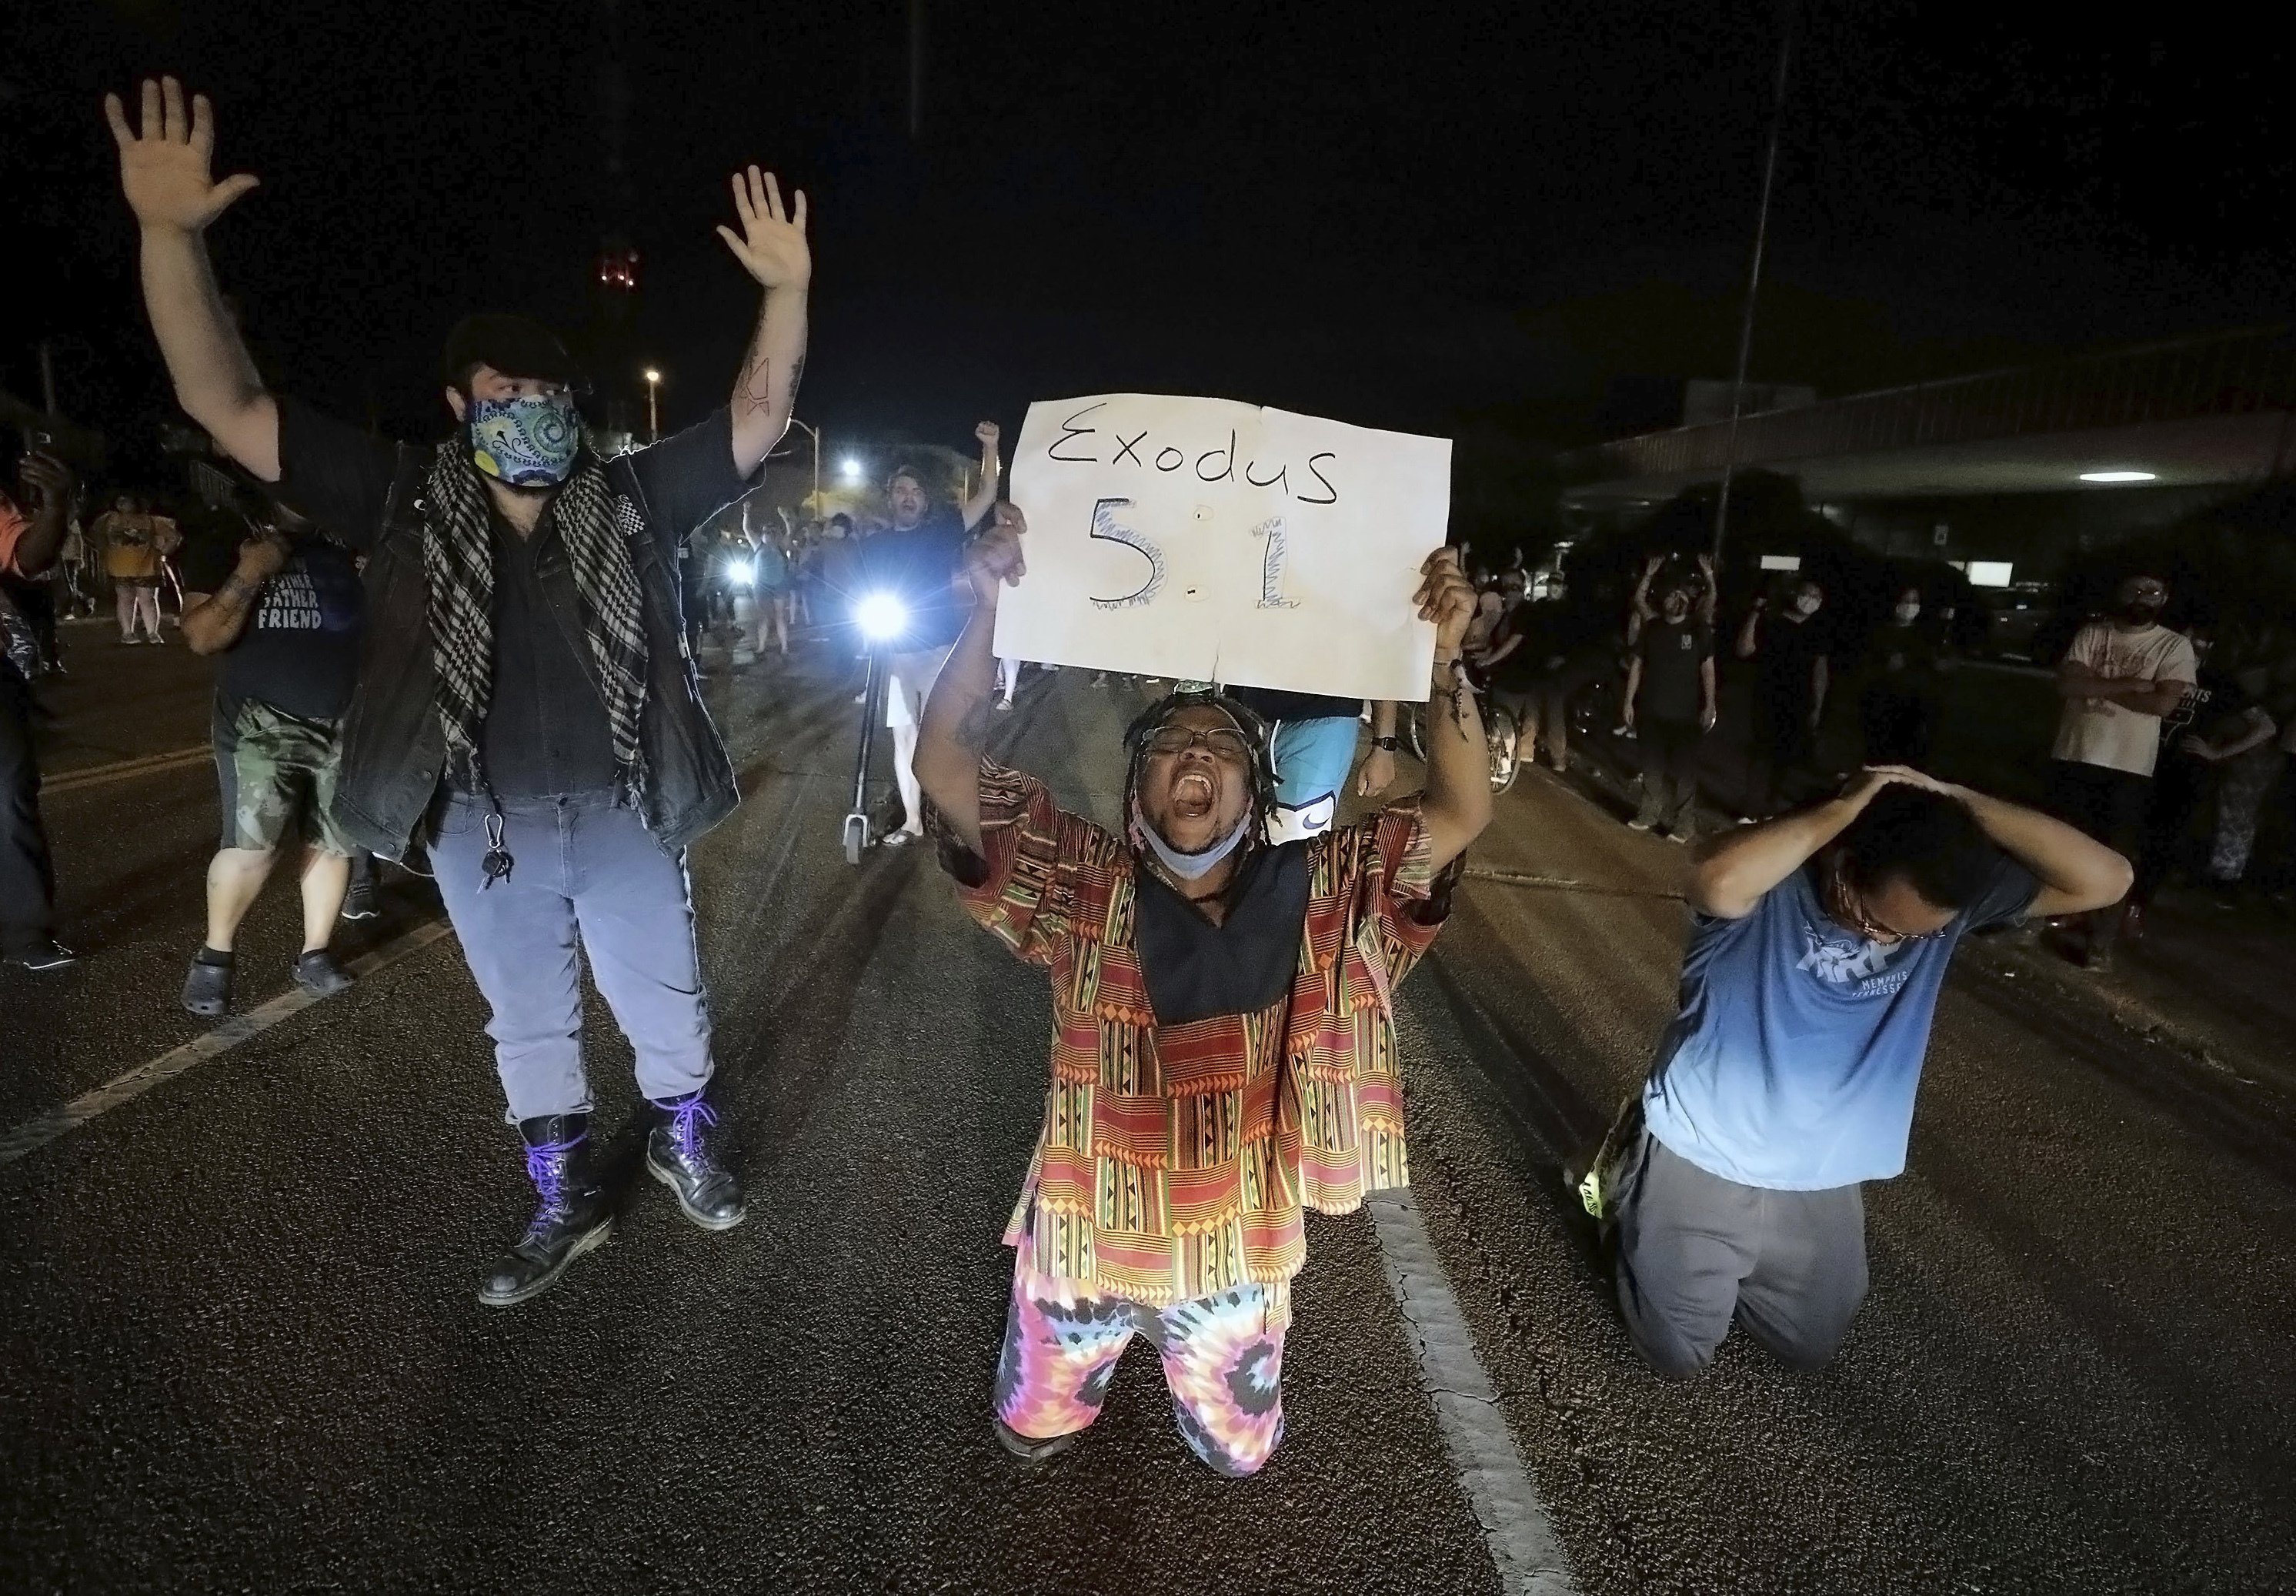 Memphis police to investigate incident at Floyd protest